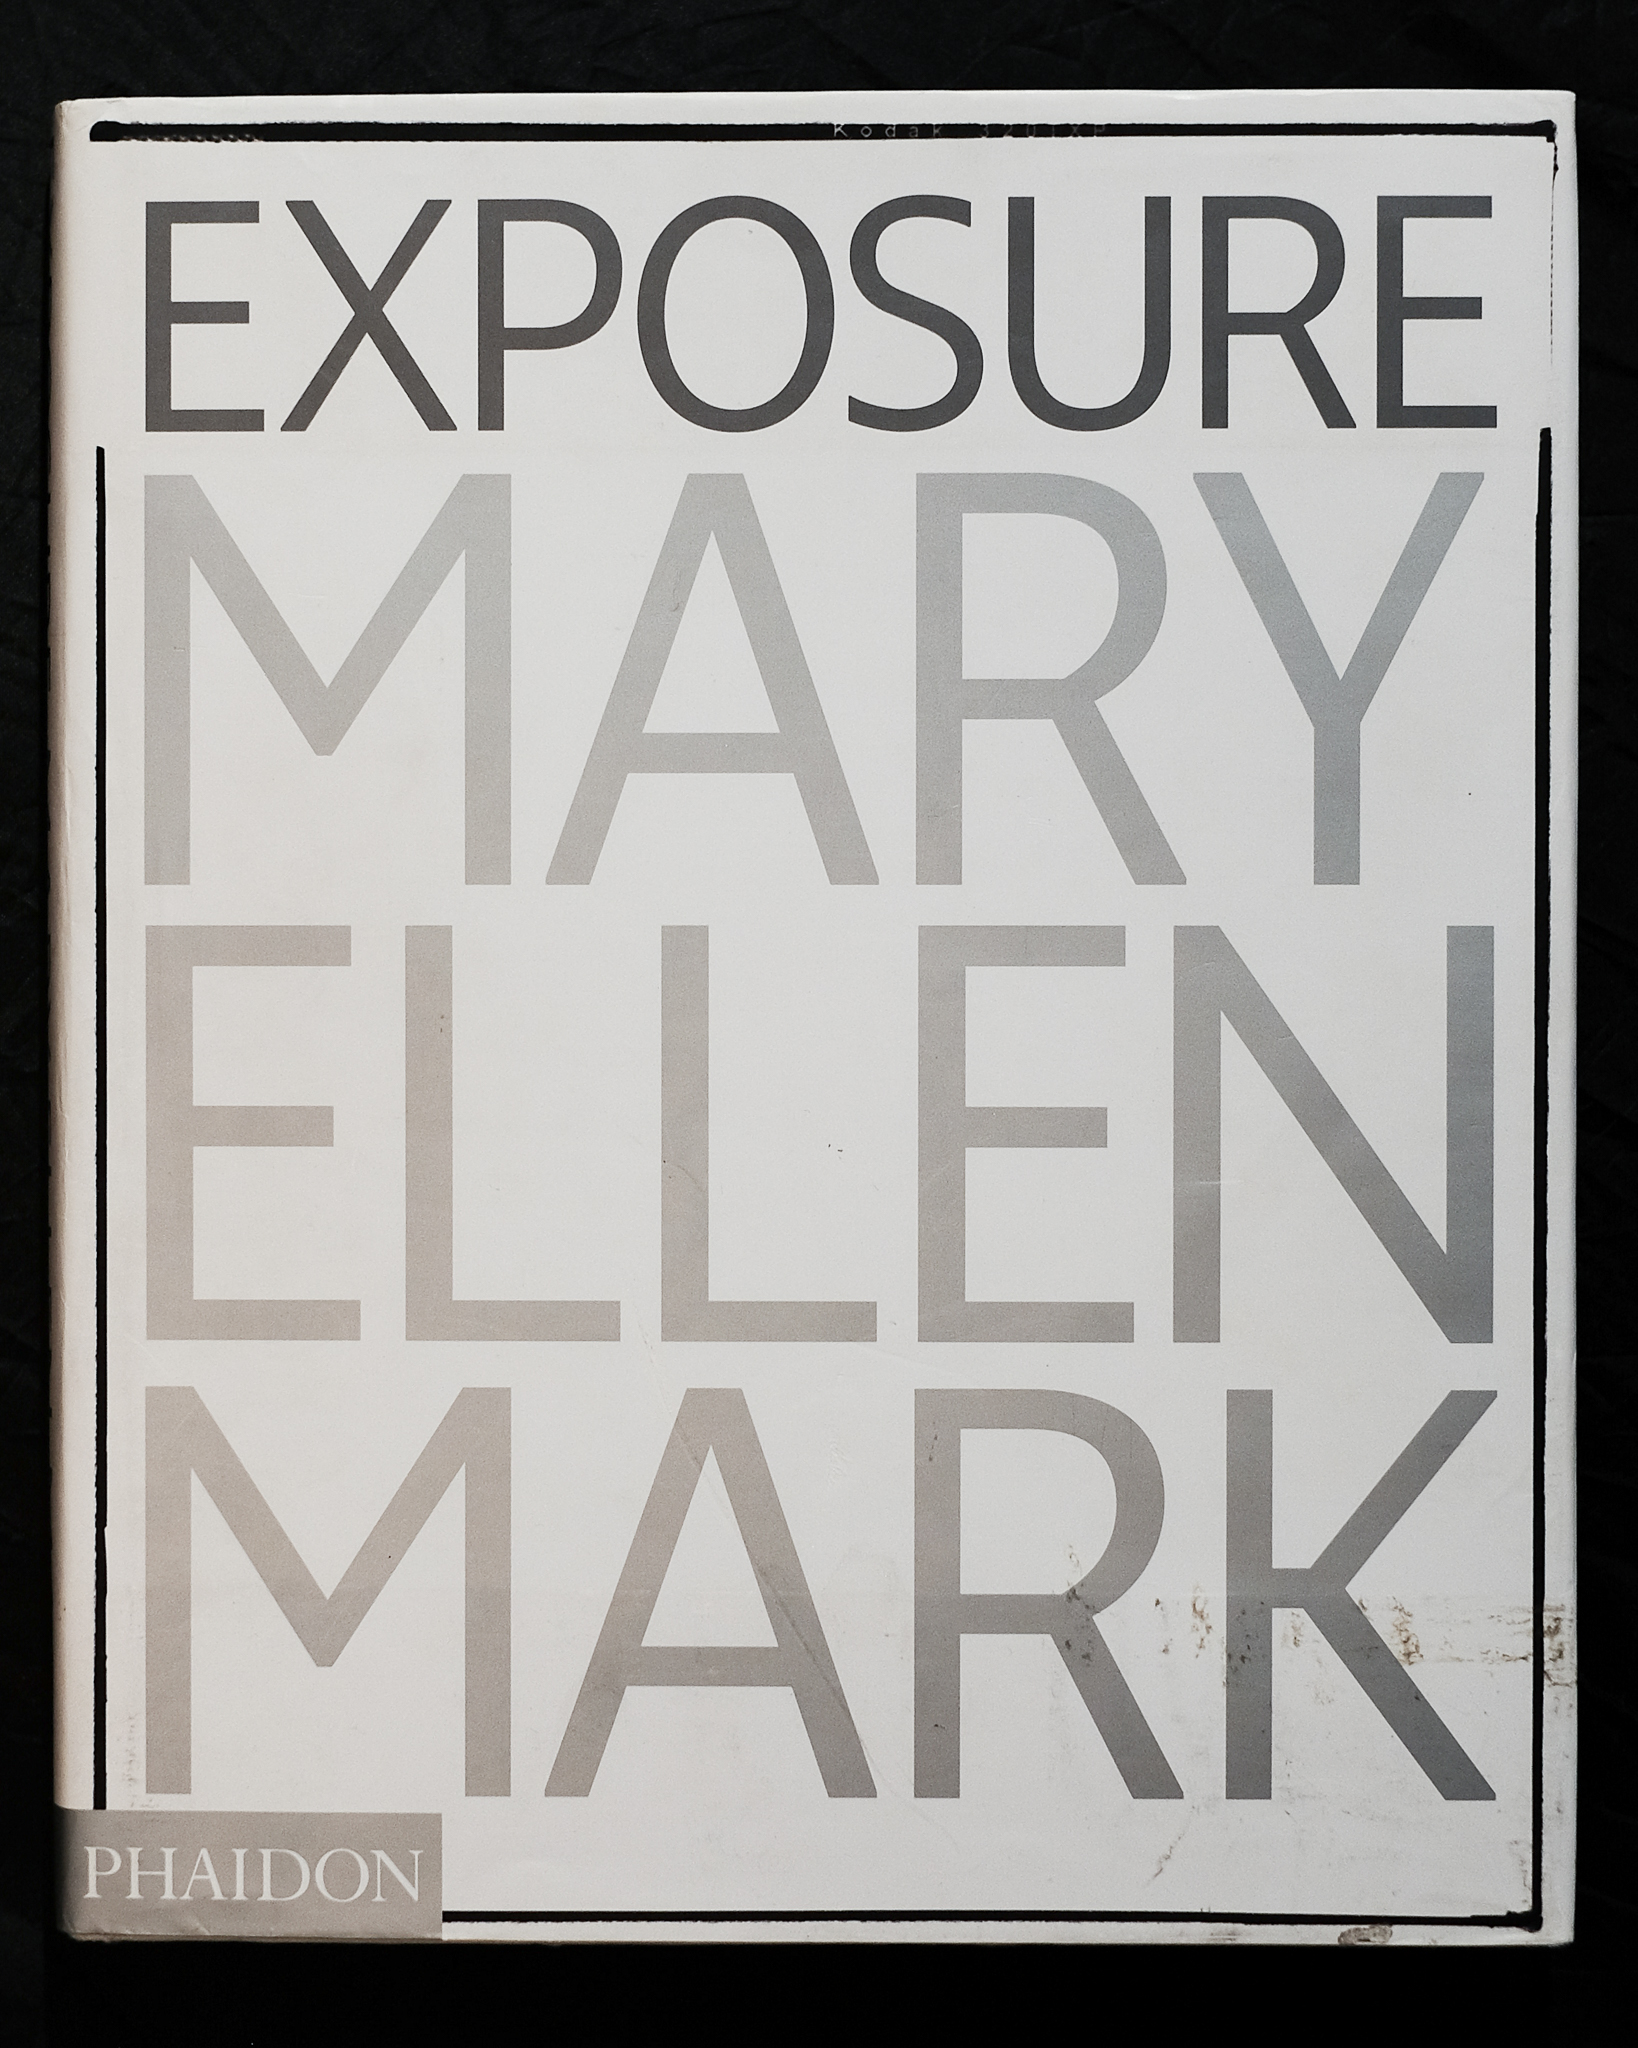 exposure-mary-ellen-mark.jpg